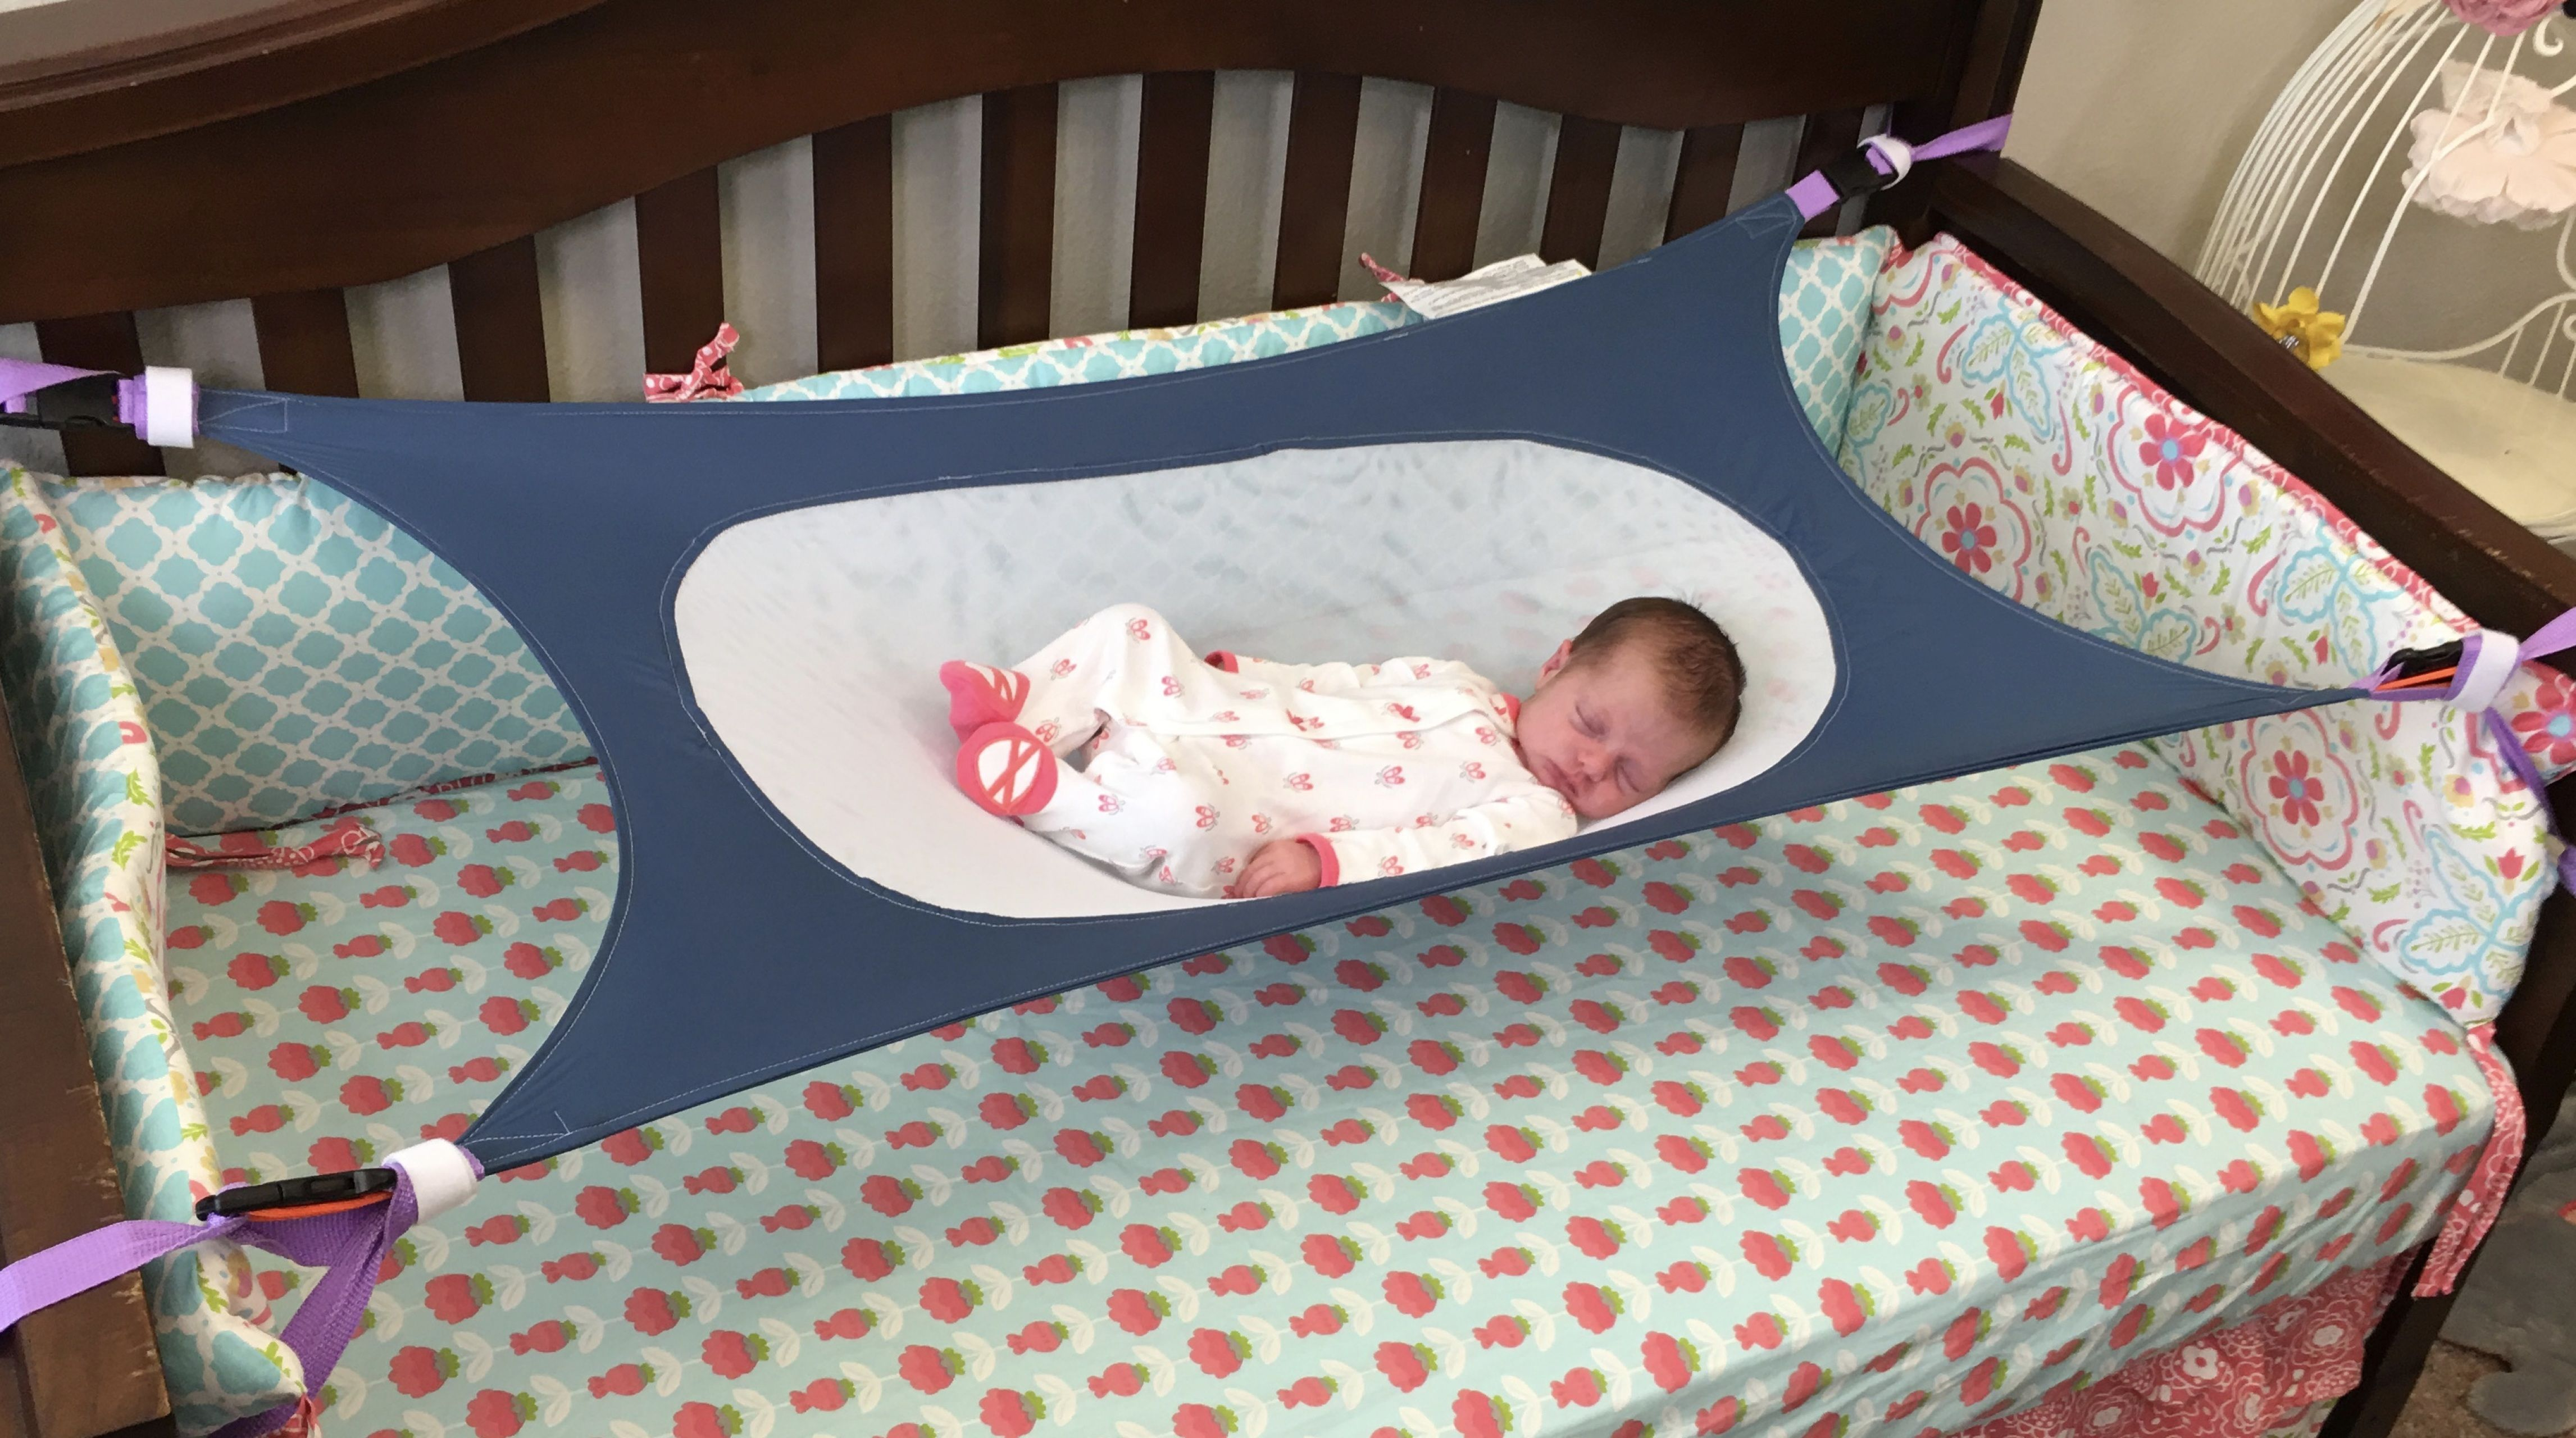 crescent womb infant safety bed   safety and  fort for your baby   helps prevent sids crescent womb infant safety bed   safety and  fort for your baby      rh   pinterest